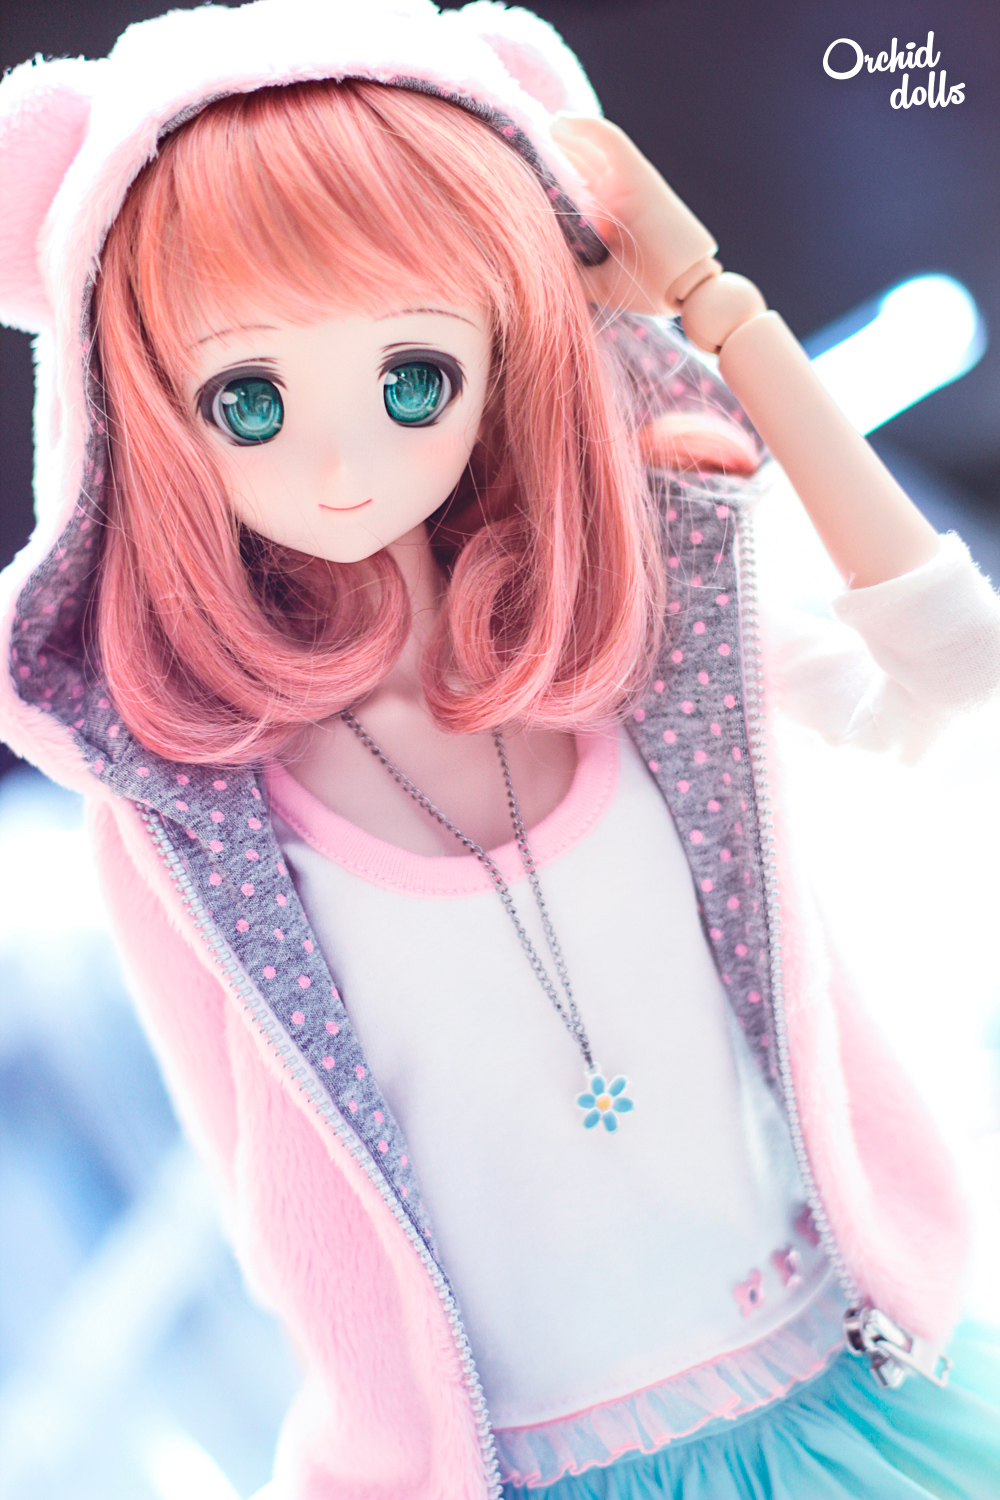 Dollfie Dream Millhiore Kawaii fairy kei